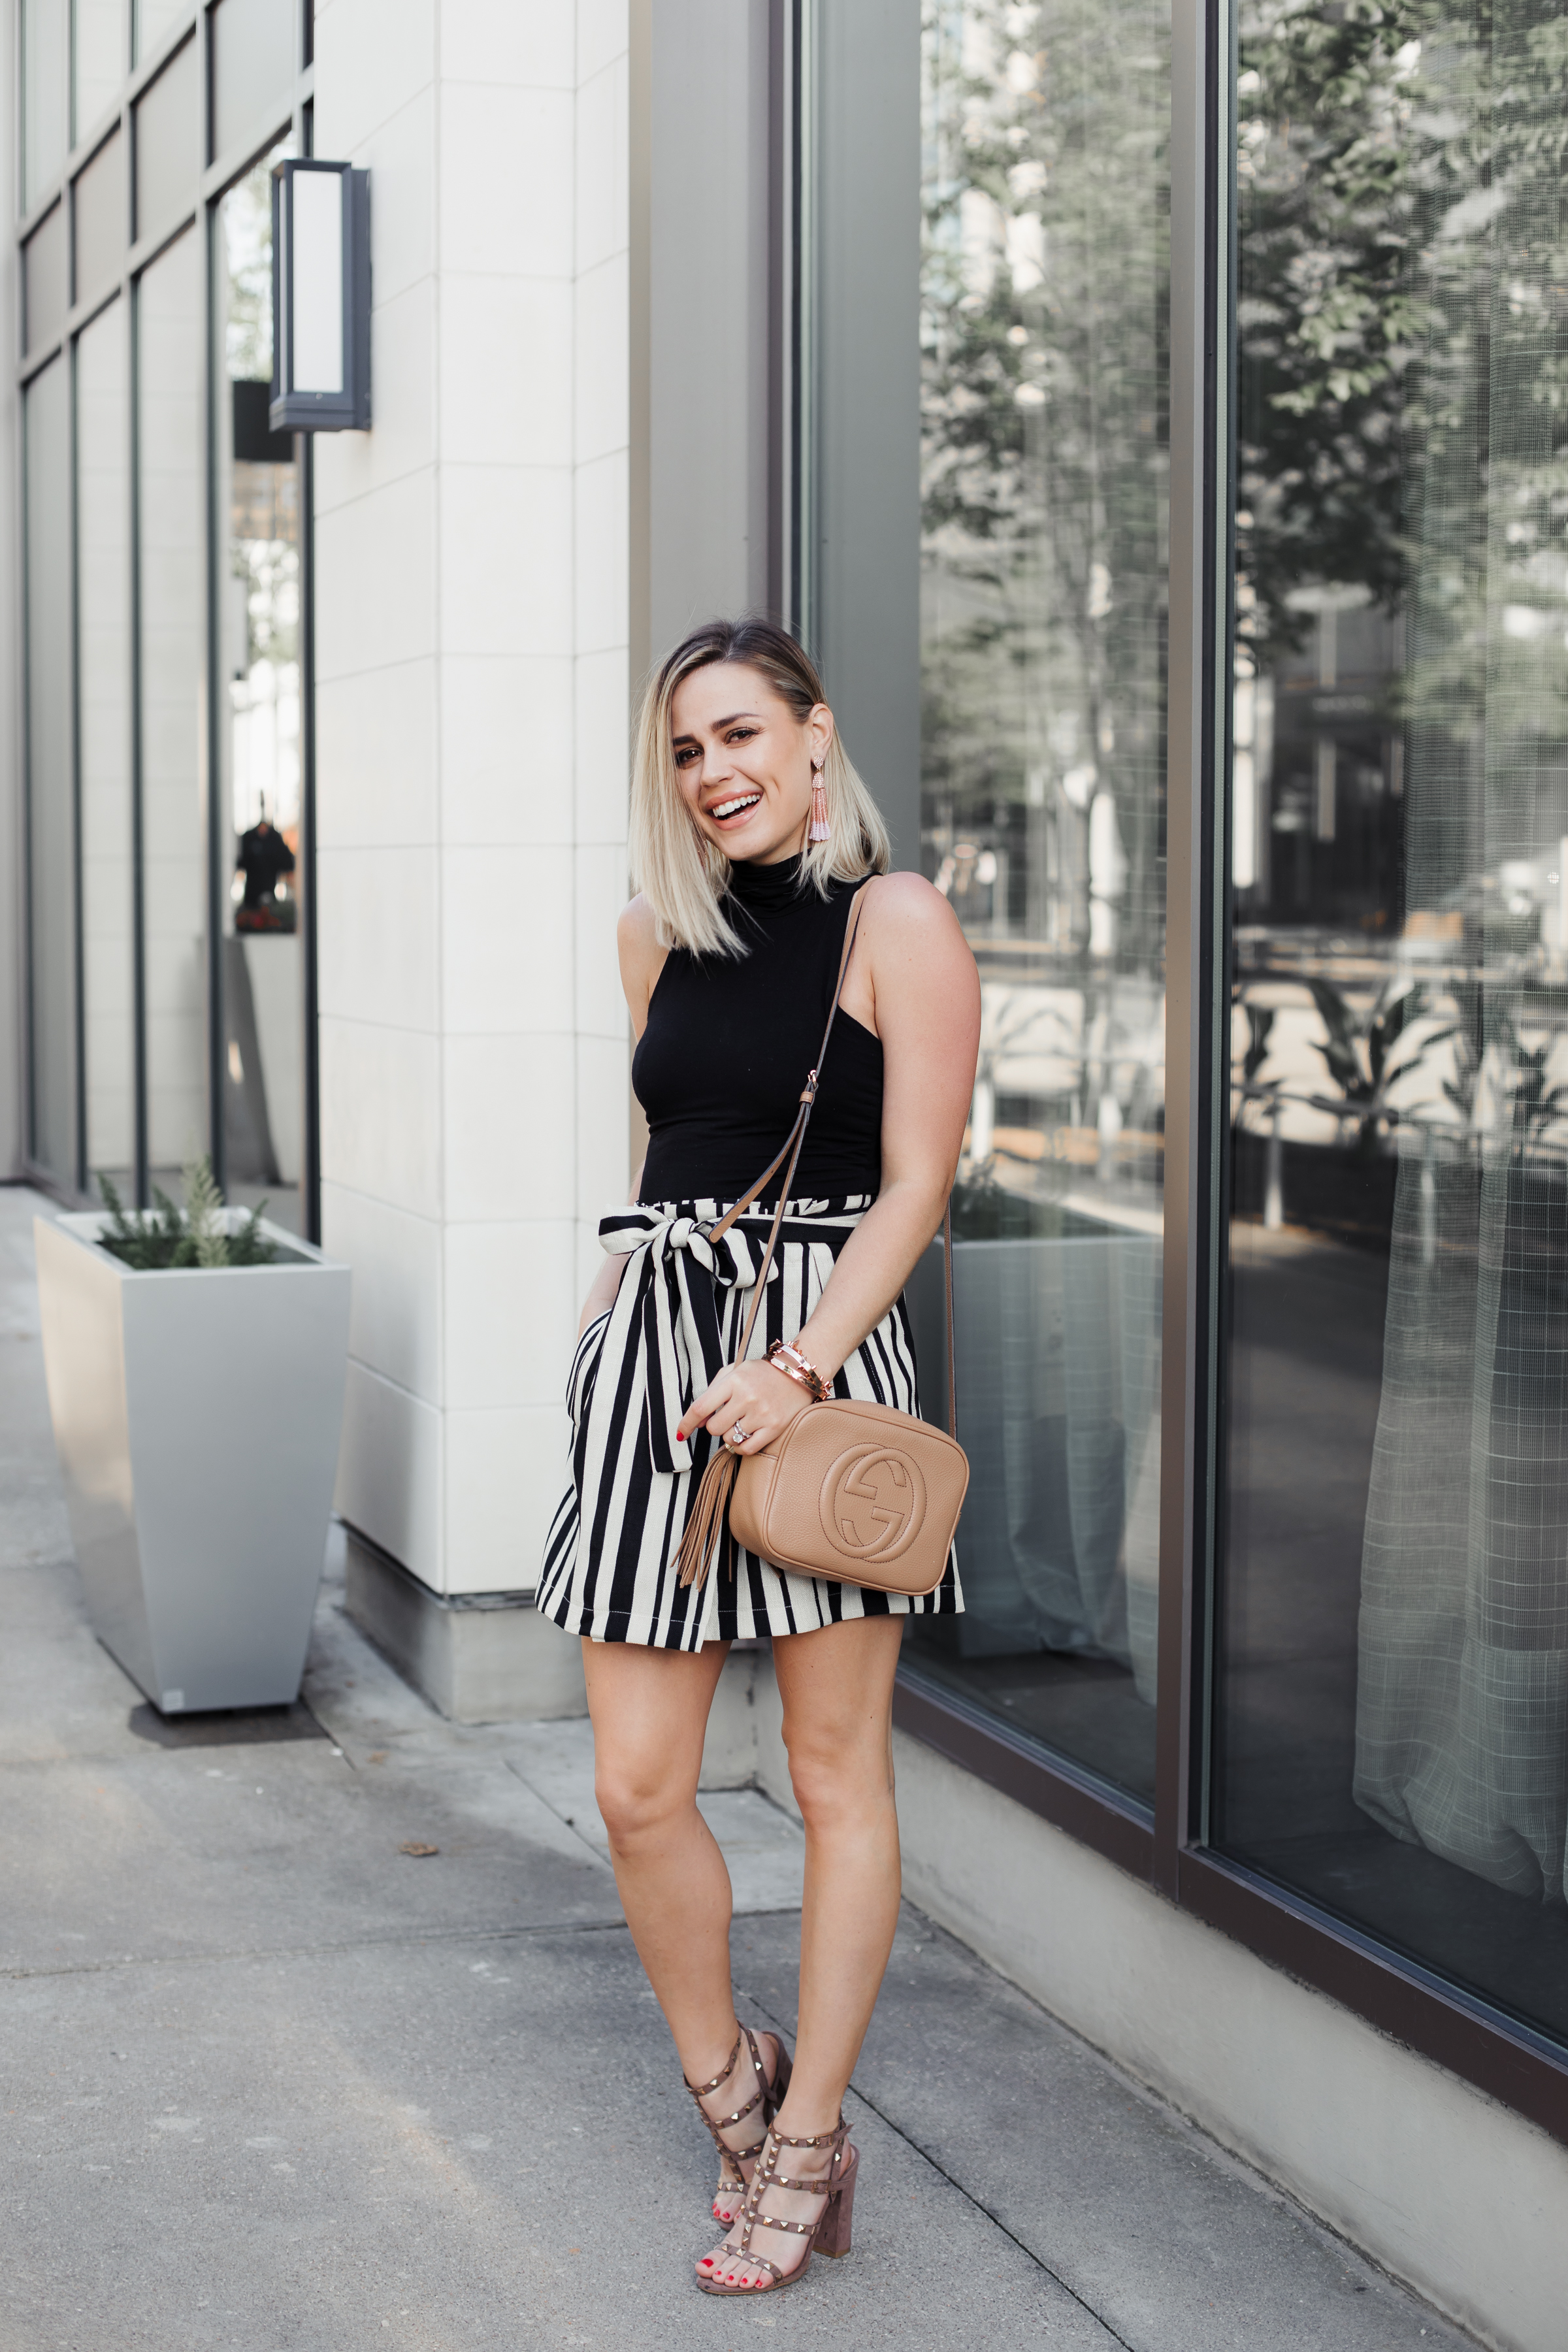 Houston lifestyle blogger Uptown with Elly Brown share 5 things to do When Life Gives You Lemons and how to change your perspective. Click here for more!